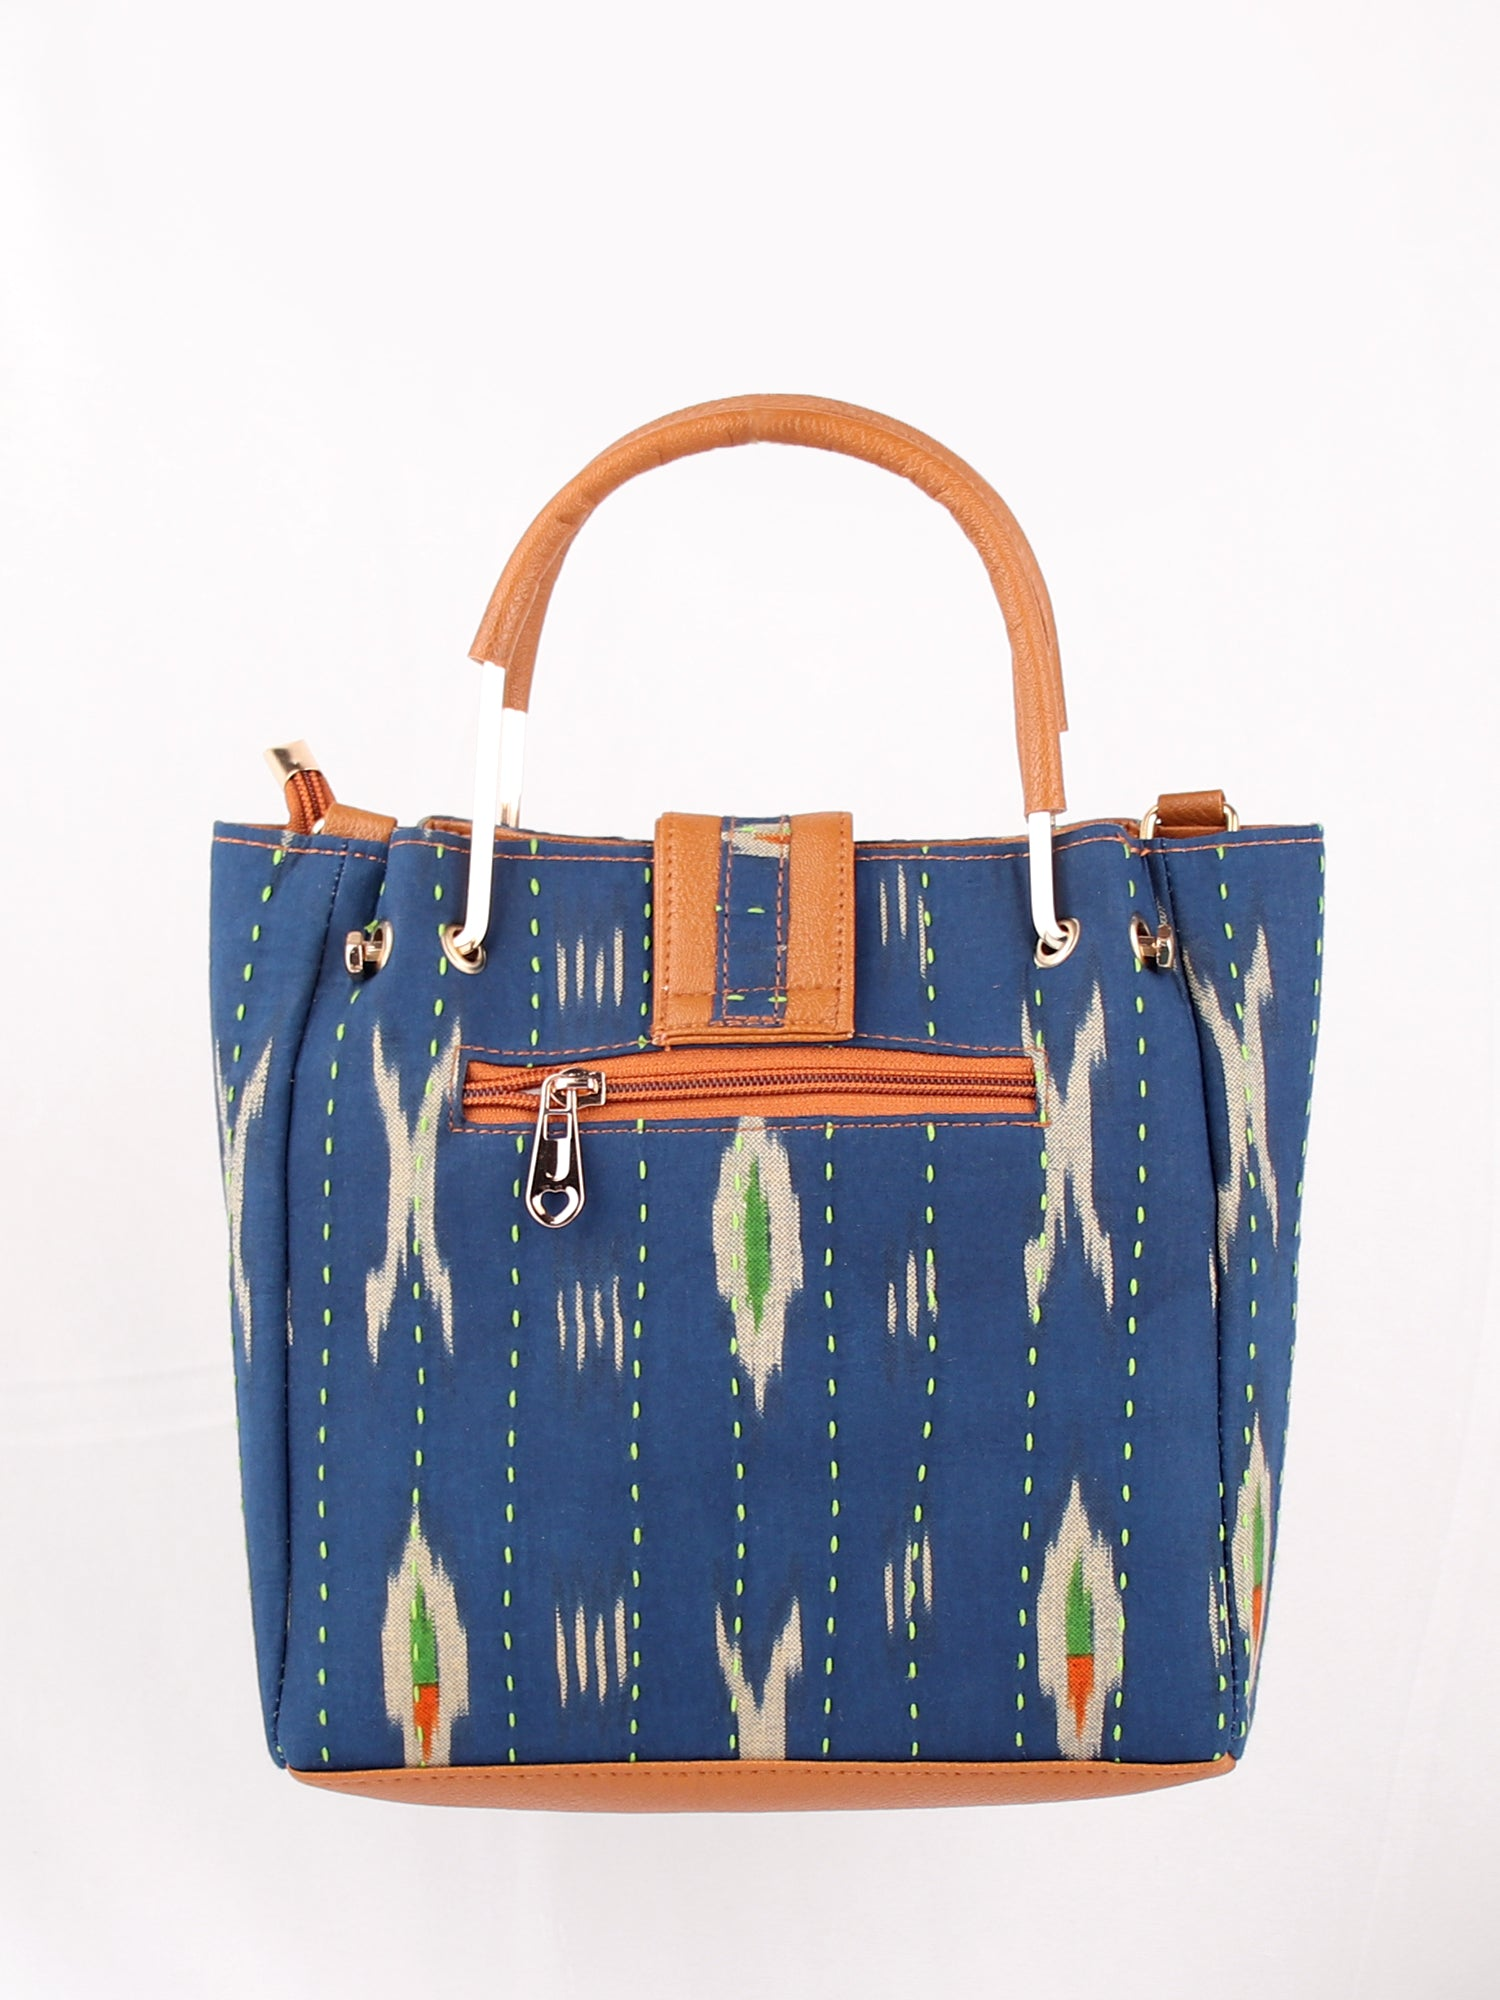 IKKAT PRINT NAVY HANDBAG WITH ADJUSTABLE STRAP